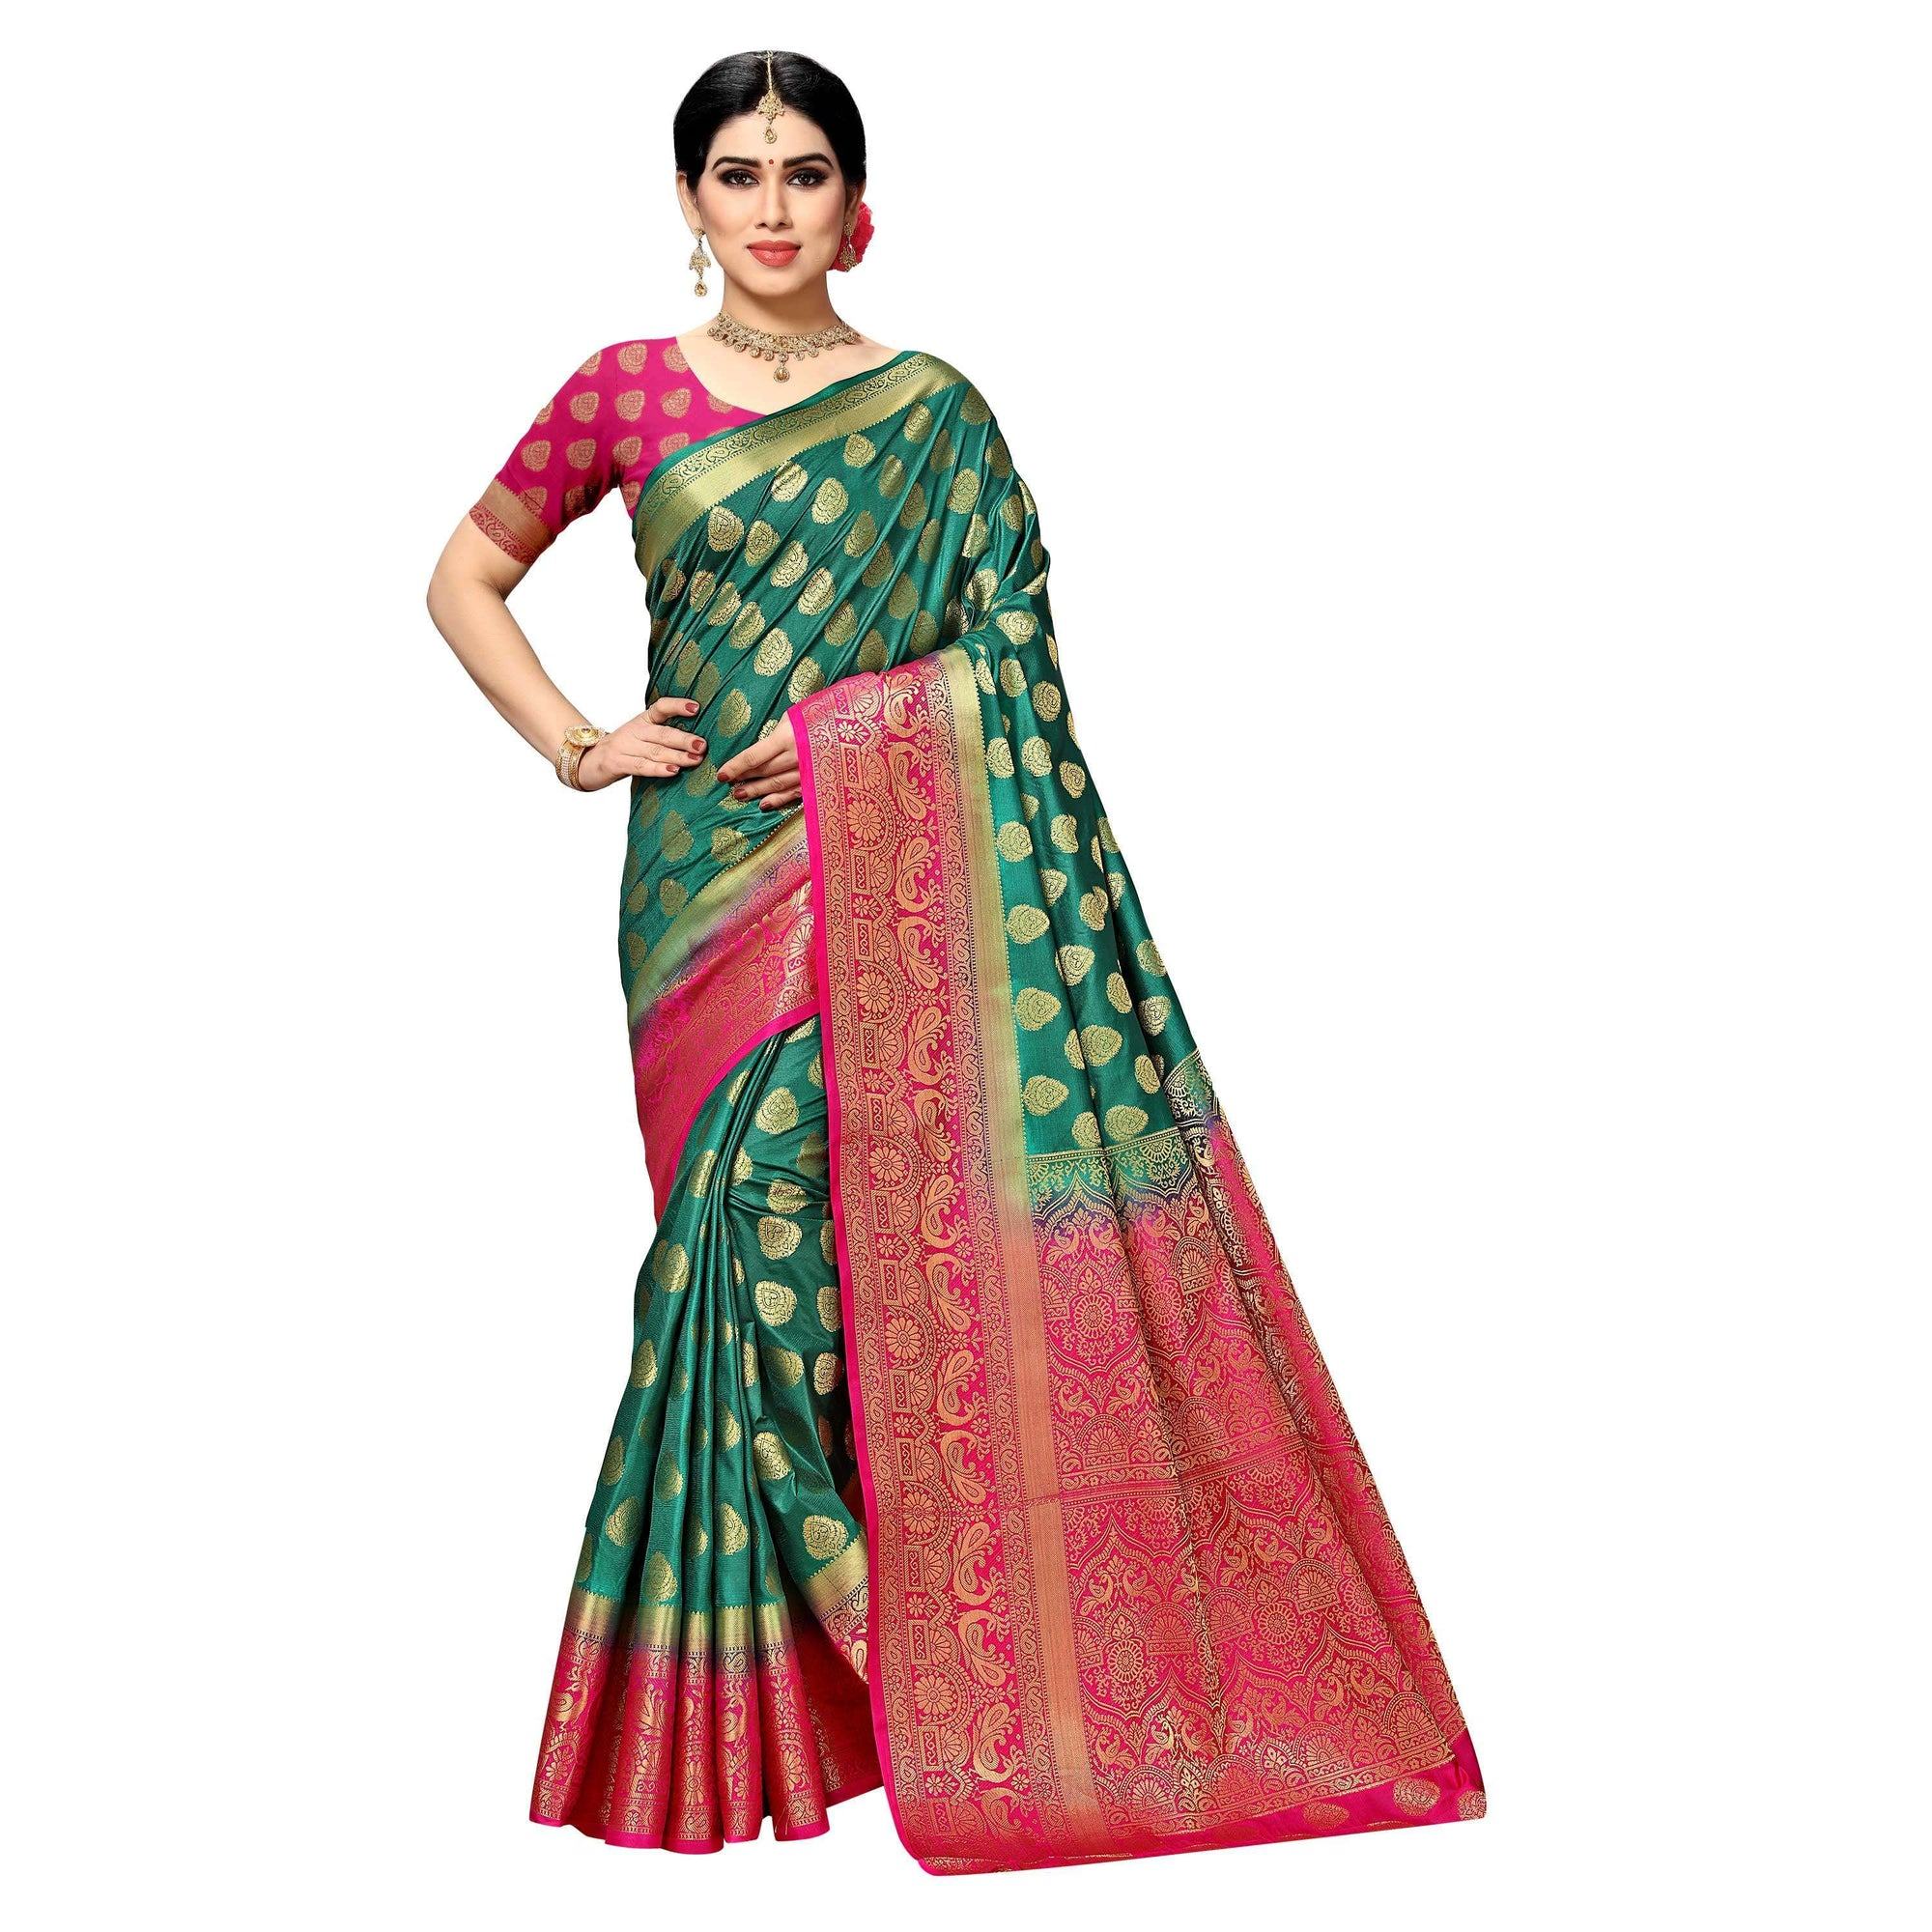 arars Women's kanchipuram kanjivaram pattu style art silk saree with blouse (450,green)